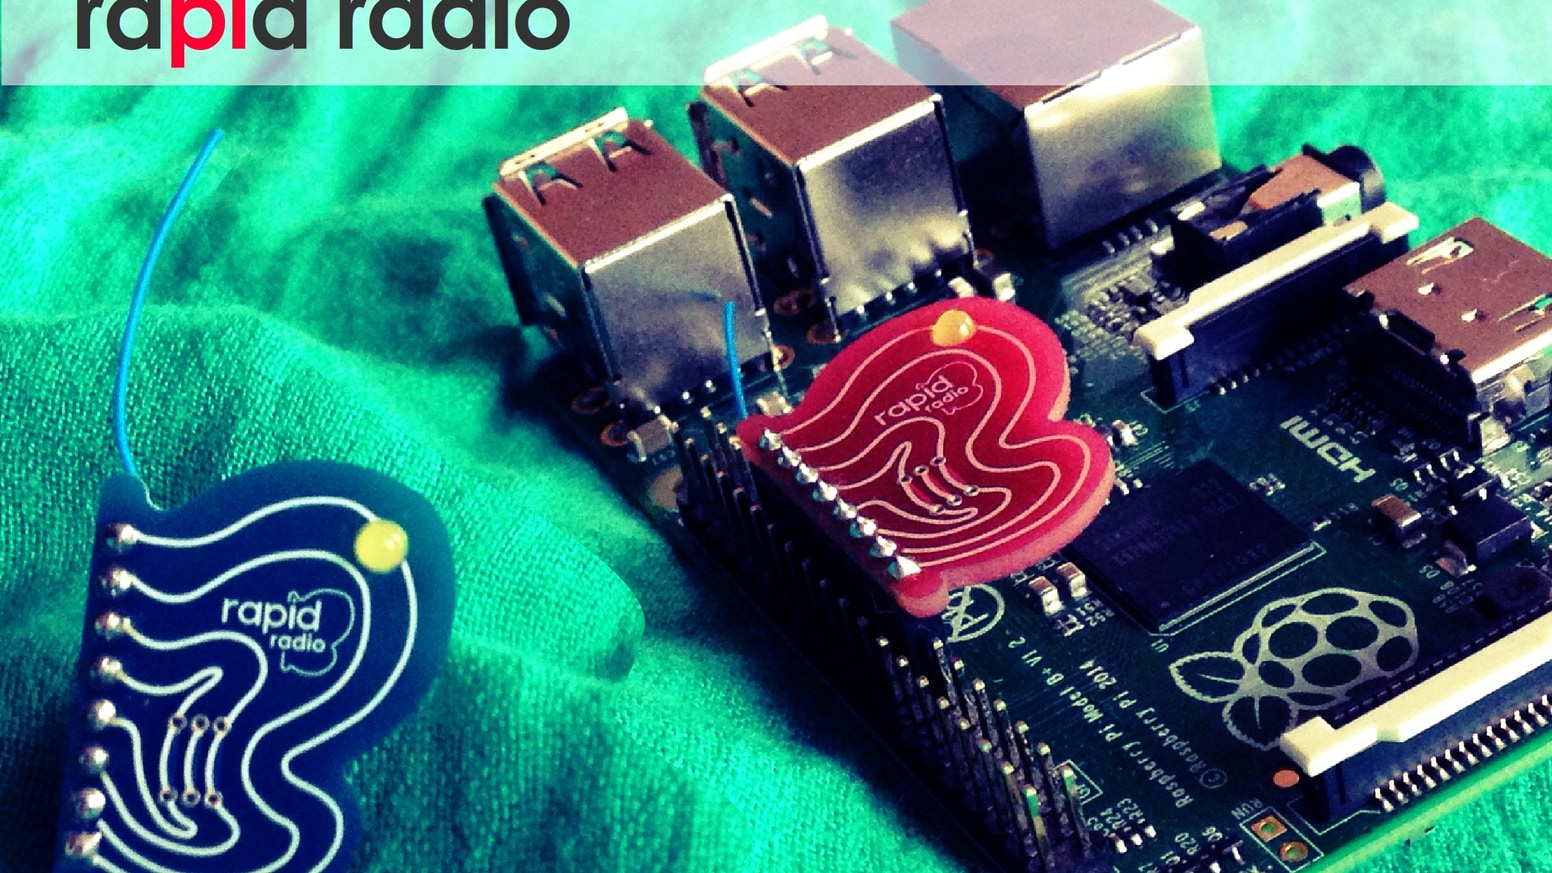 'YES' to beautiful designed electronic components: rapidradio is the cutest RaspberryPi radio ever! 2.4GHz ISM band. Arduino adaptable! Internet of (beautiful) Things! (see below)